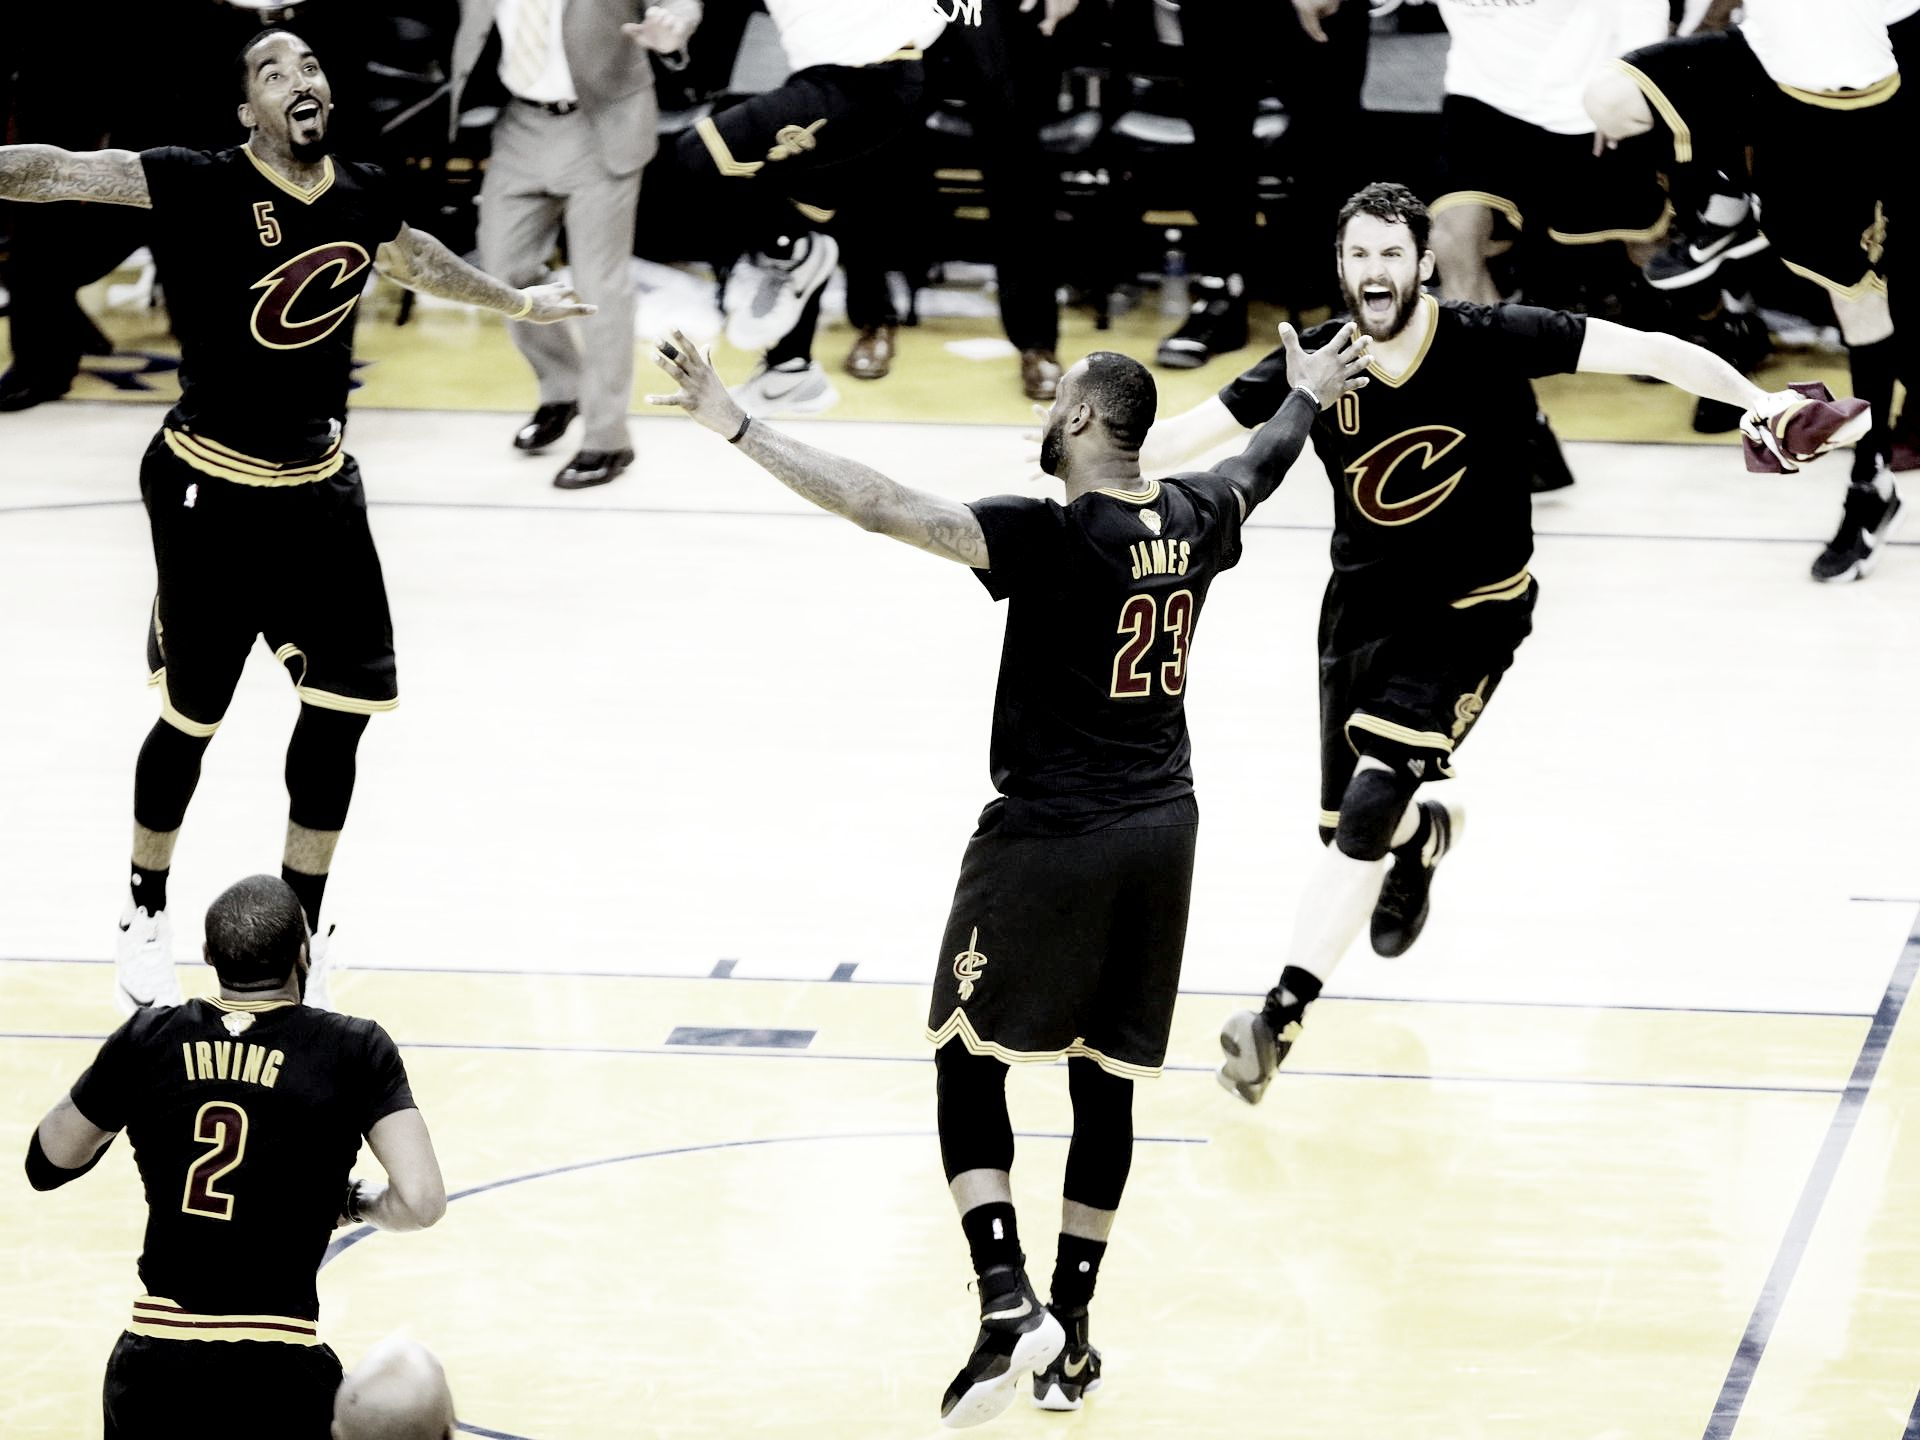 Highlights From Game 7 Of The 2016 NBA Finals | Cleveland Cavaliers 2016 NBA Champions